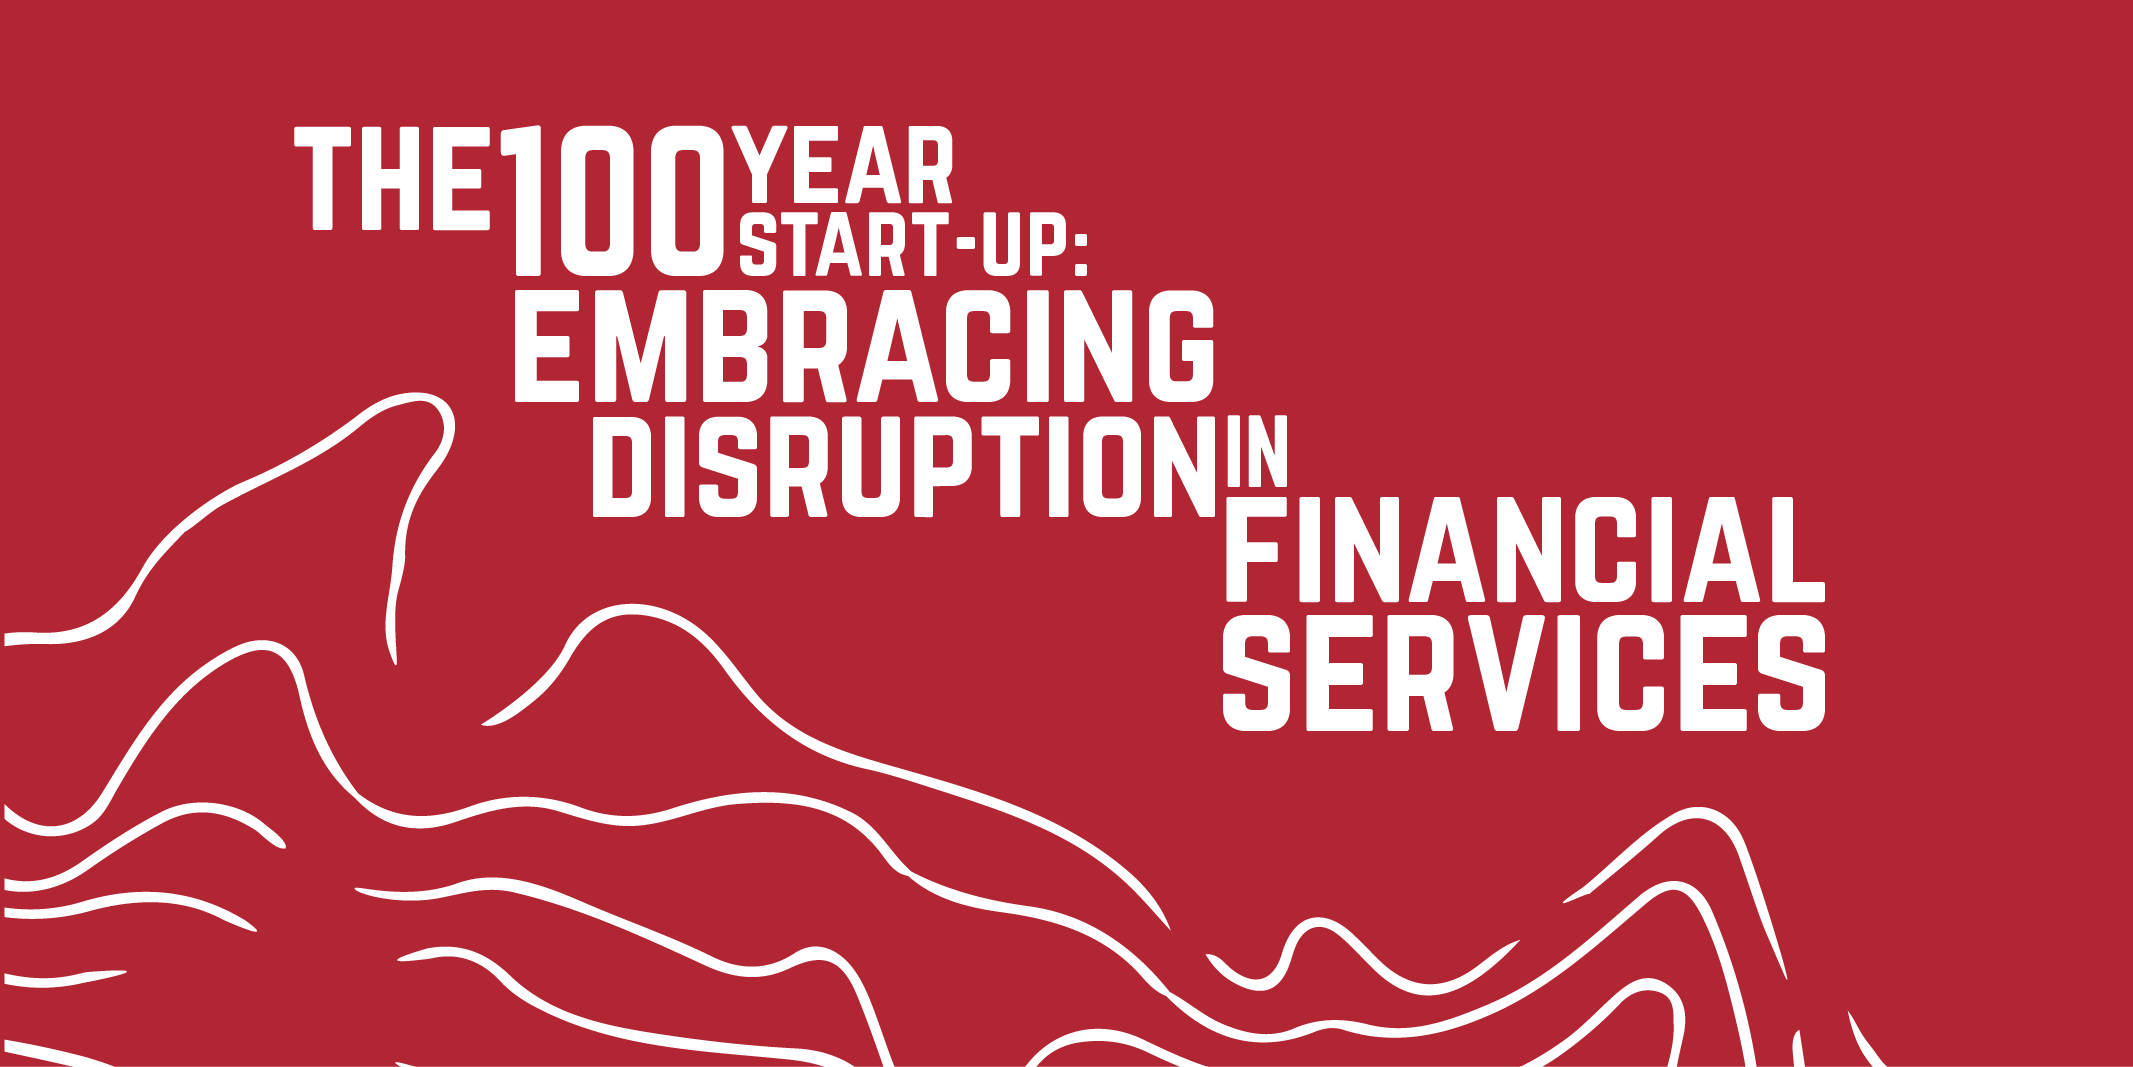 The 100 Year Start-up: Embracing Disruption in Financial Services